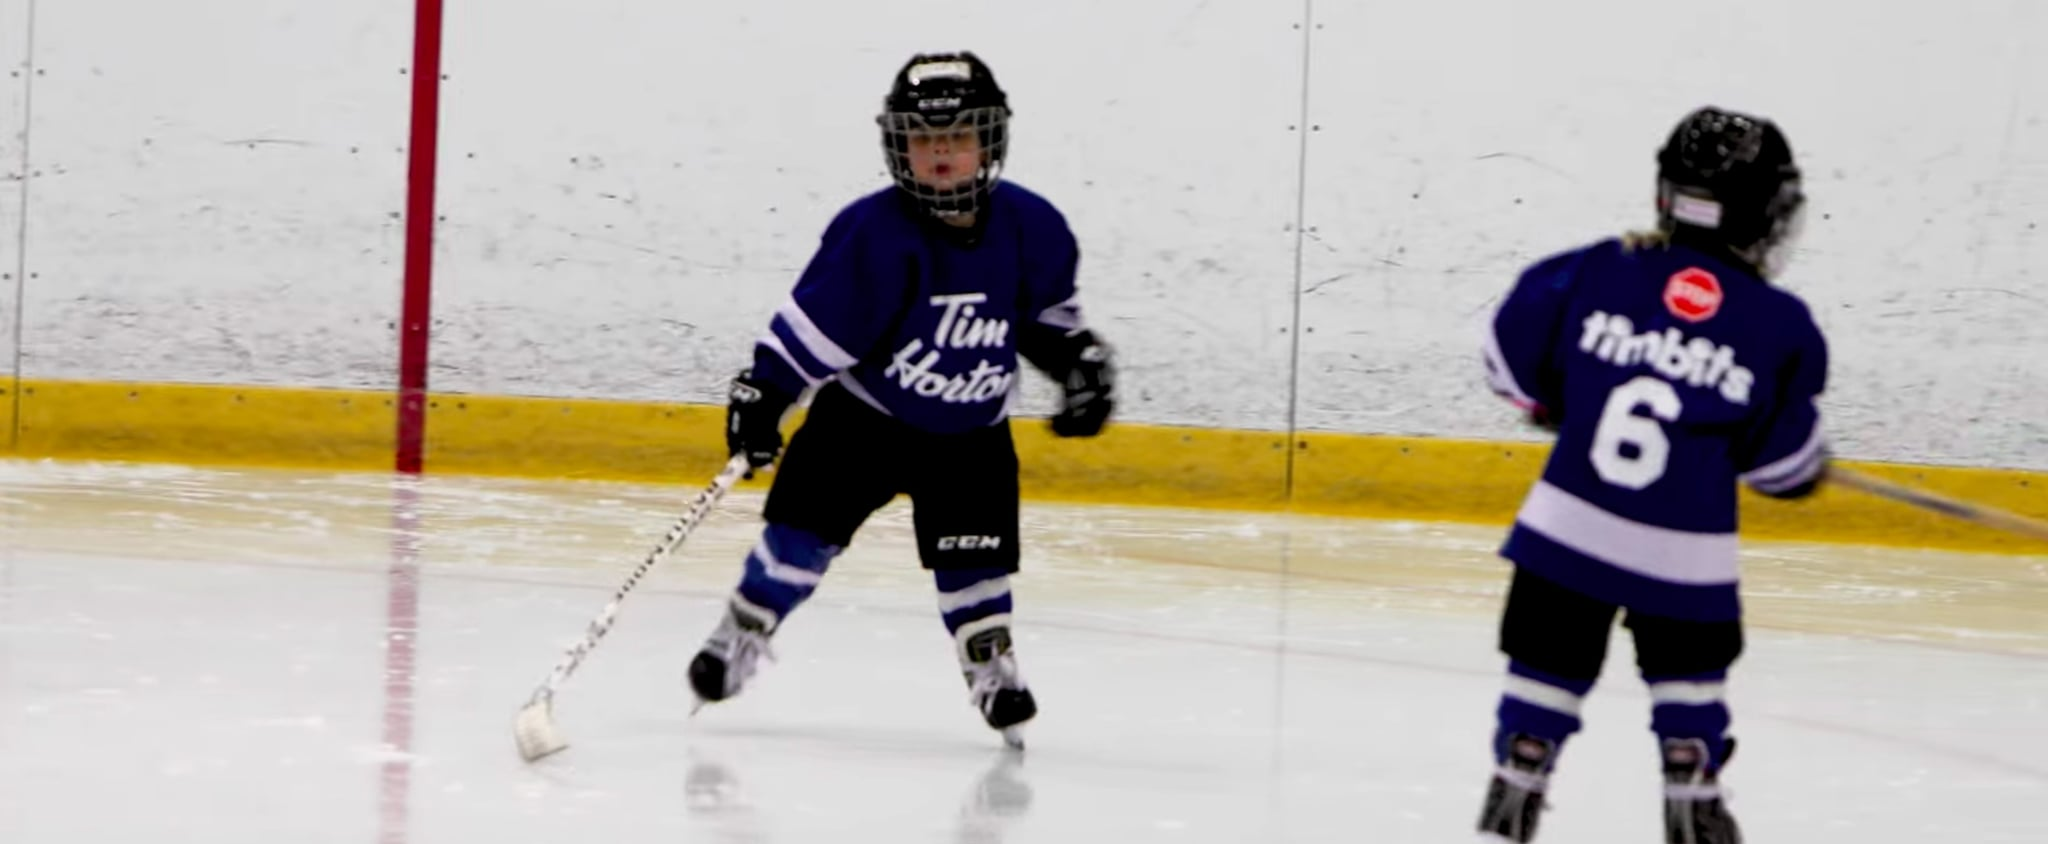 Dad Puts Microphone on Son at Hockey Practice Video